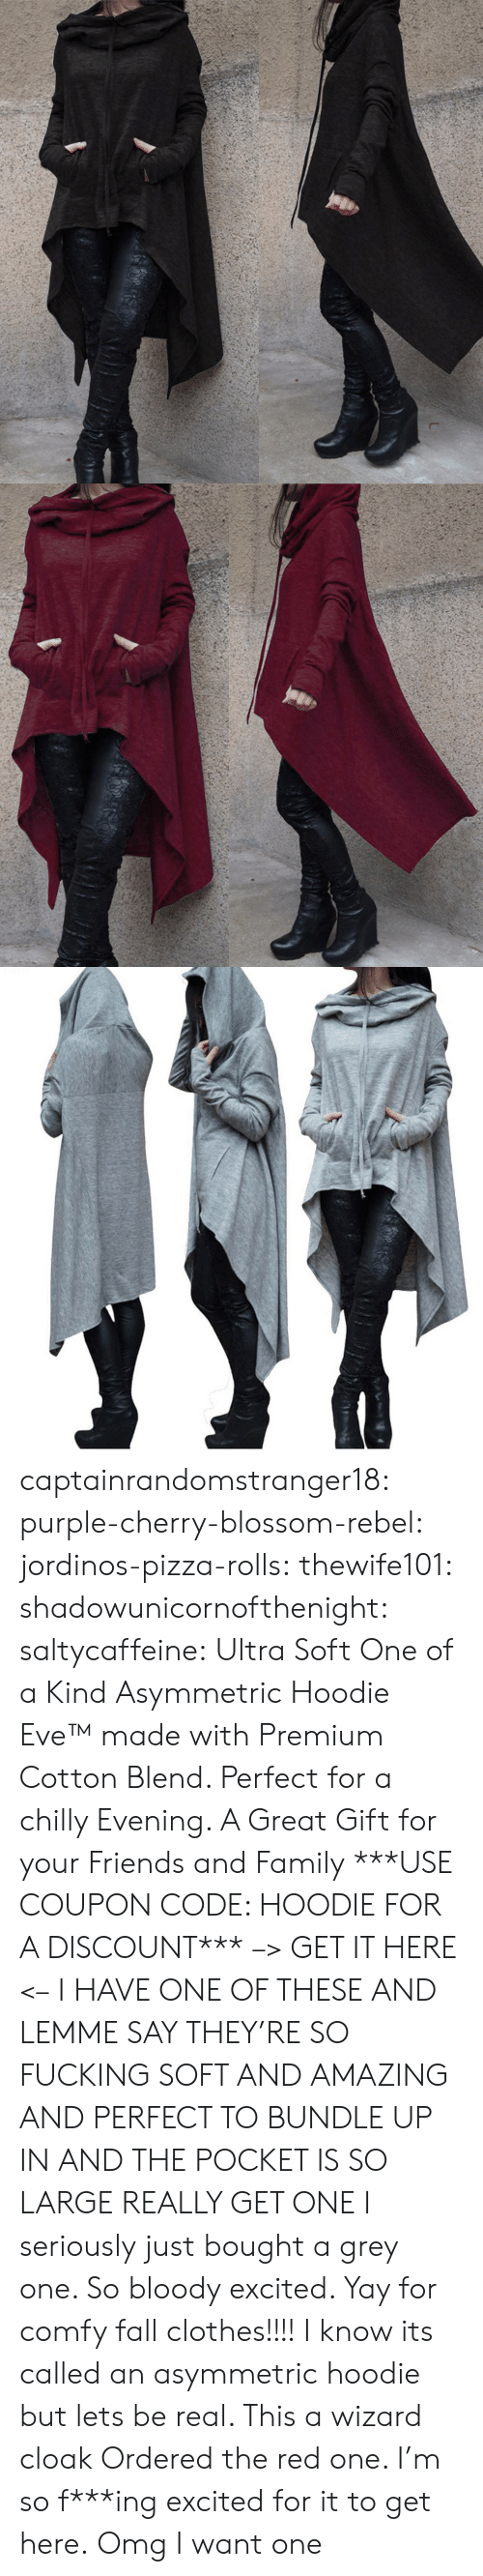 Blend: captainrandomstranger18:  purple-cherry-blossom-rebel: jordinos-pizza-rolls:  thewife101:  shadowunicornofthenight:  saltycaffeine:  Ultra Soft One of a Kind Asymmetric Hoodie Eve™made with Premium Cotton Blend. Perfect for a chilly Evening. A Great Gift for your Friends and Family ***USE COUPON CODE: HOODIE FOR A DISCOUNT*** –> GET IT HERE <–   I HAVE ONE OF THESE AND LEMME SAY THEY'RE SO FUCKING SOFT AND AMAZING AND PERFECT TO BUNDLE UP IN AND THE POCKET IS SO LARGE REALLY GET ONE   I seriously just bought a grey one. So bloody excited. Yay for comfy fall clothes!!!!    I know its called an asymmetric hoodie but lets be real. This a wizard cloak   Ordered the red one. I'm so f***ing excited for it to get here.  Omg I want one